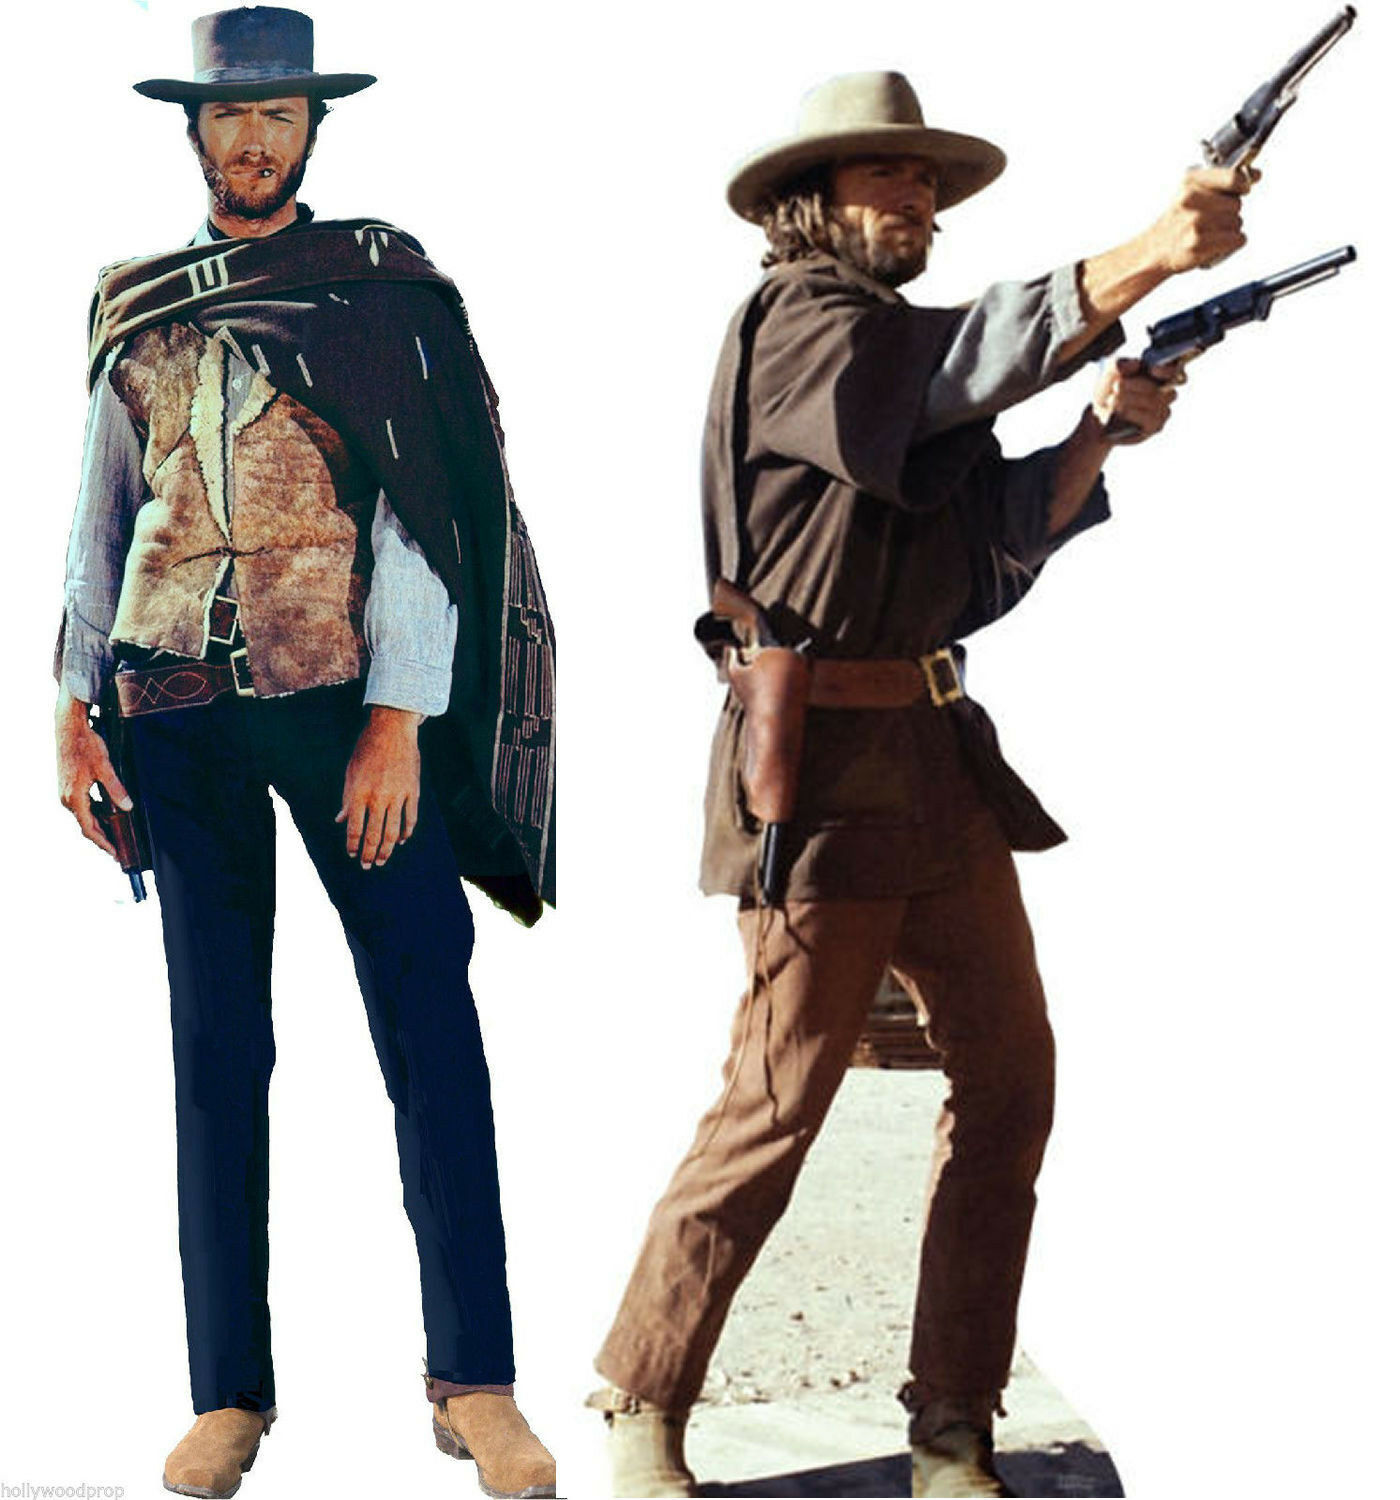 Bad Guy Set It Off Chords Clint Eastwood The Good Bad And Ugly Josey Wales Lifesize